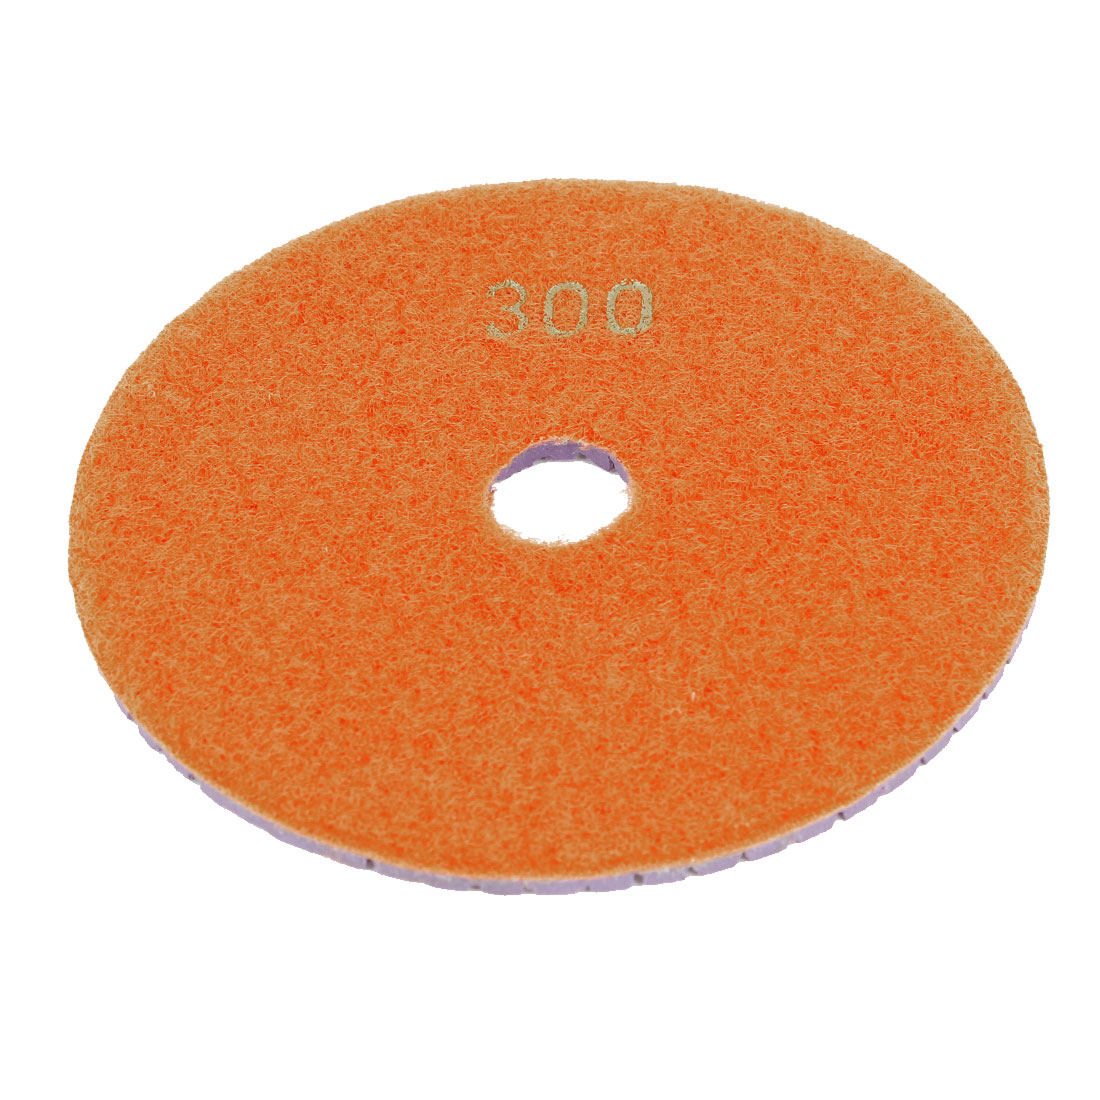 Marble Stone 300 Grit Wet Dry Diamond Buffer Polishing Pad Disc Orange